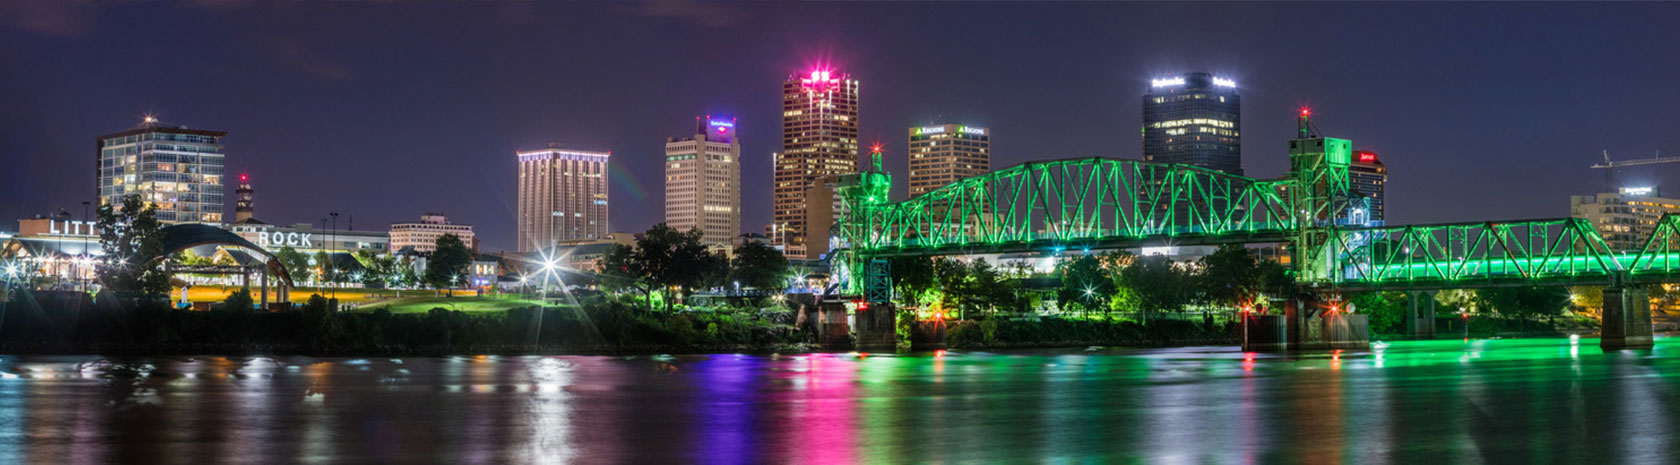 A night shot of the city with the focus on a walkover bridge lit up in green lights in Little Rock, Arkansas